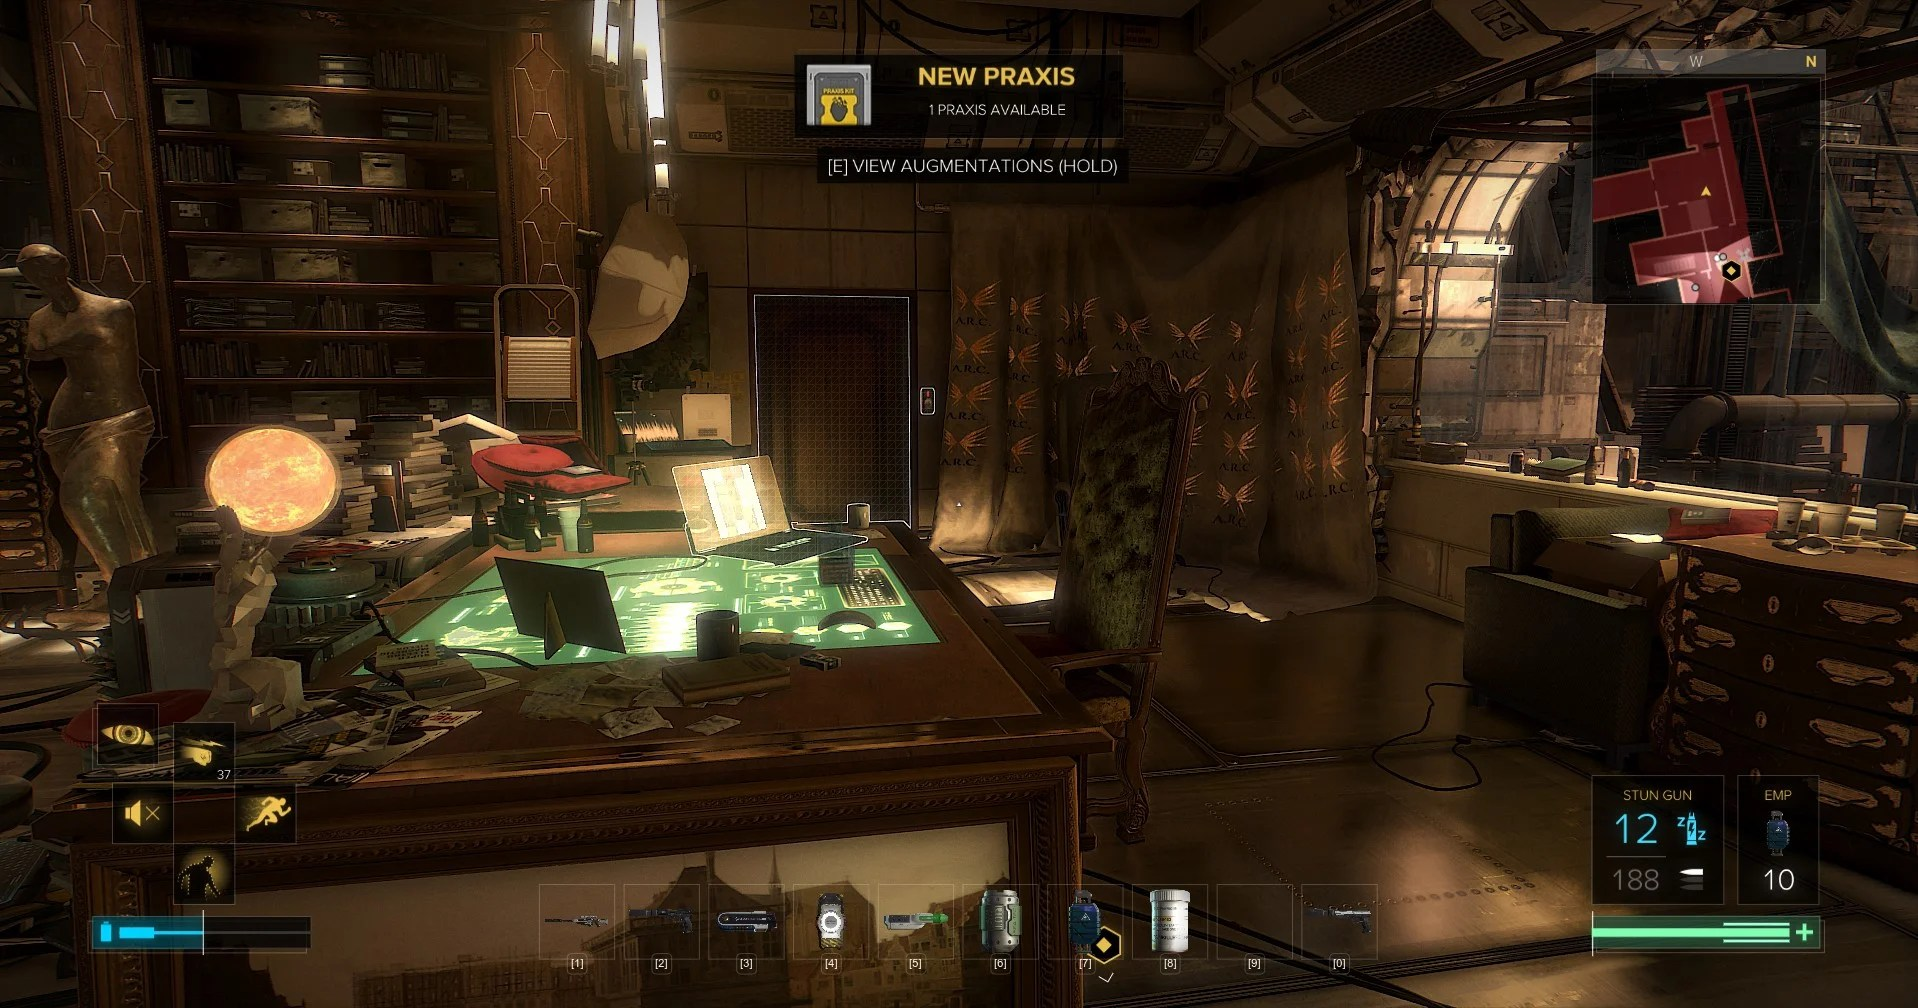 Zwarte Kit Praxis Praxis Kit Locations - Deus Ex: Mankind Divided Wiki Guide